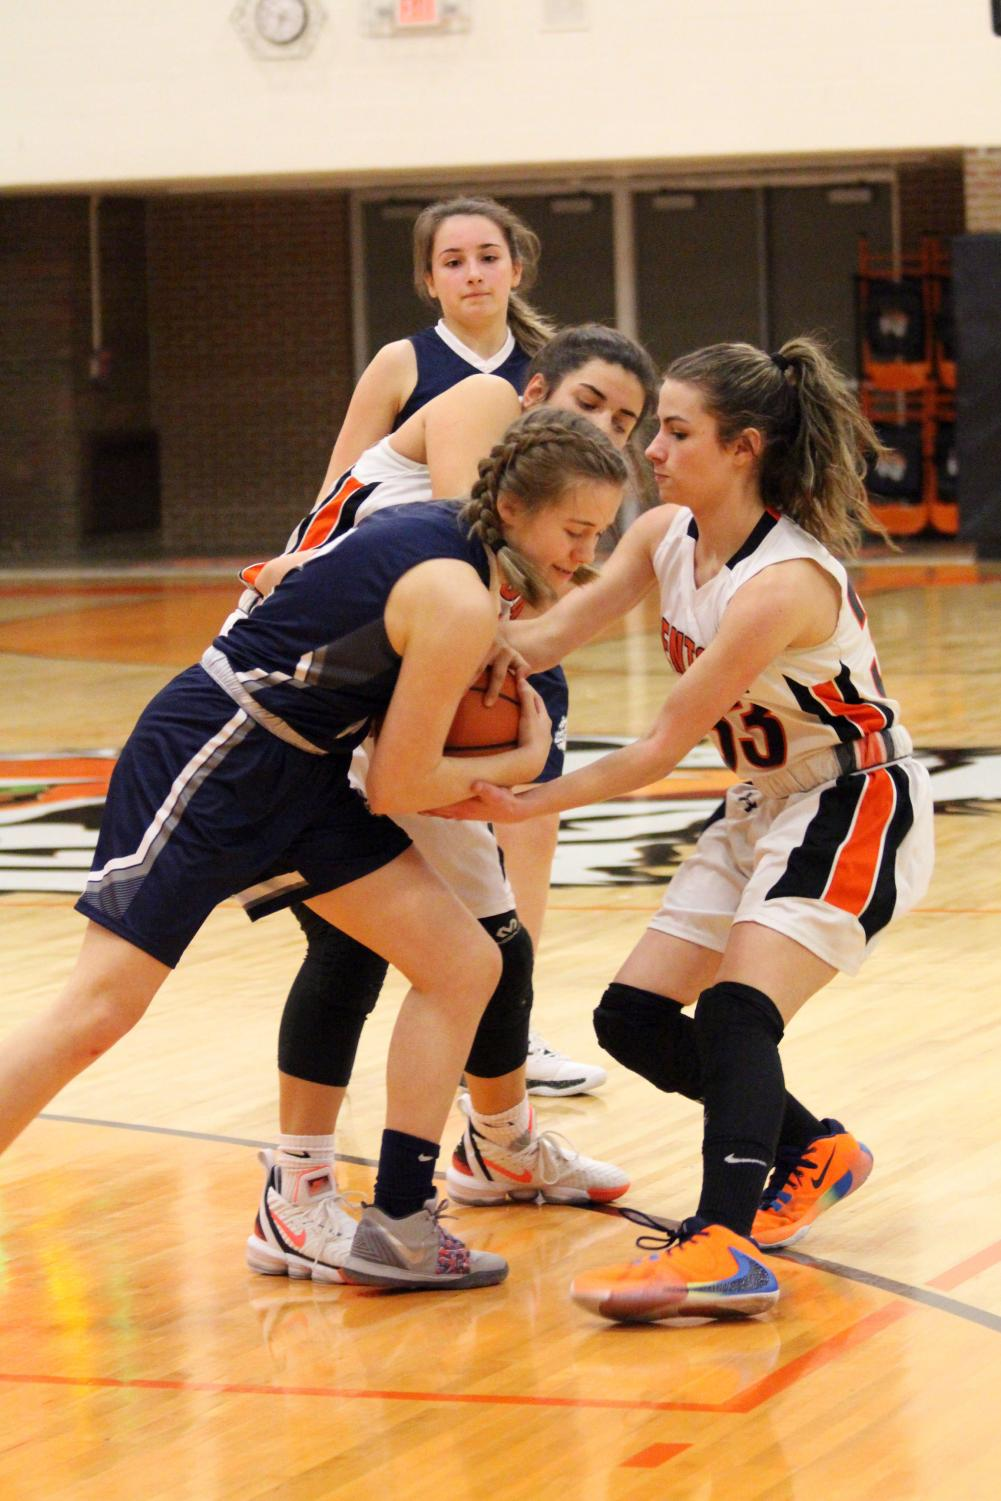 Freshman Sophia Hense tries to steal the ball from her opponent. On Jan. 22, Fenton versed South Lyon at home and won 51-16.